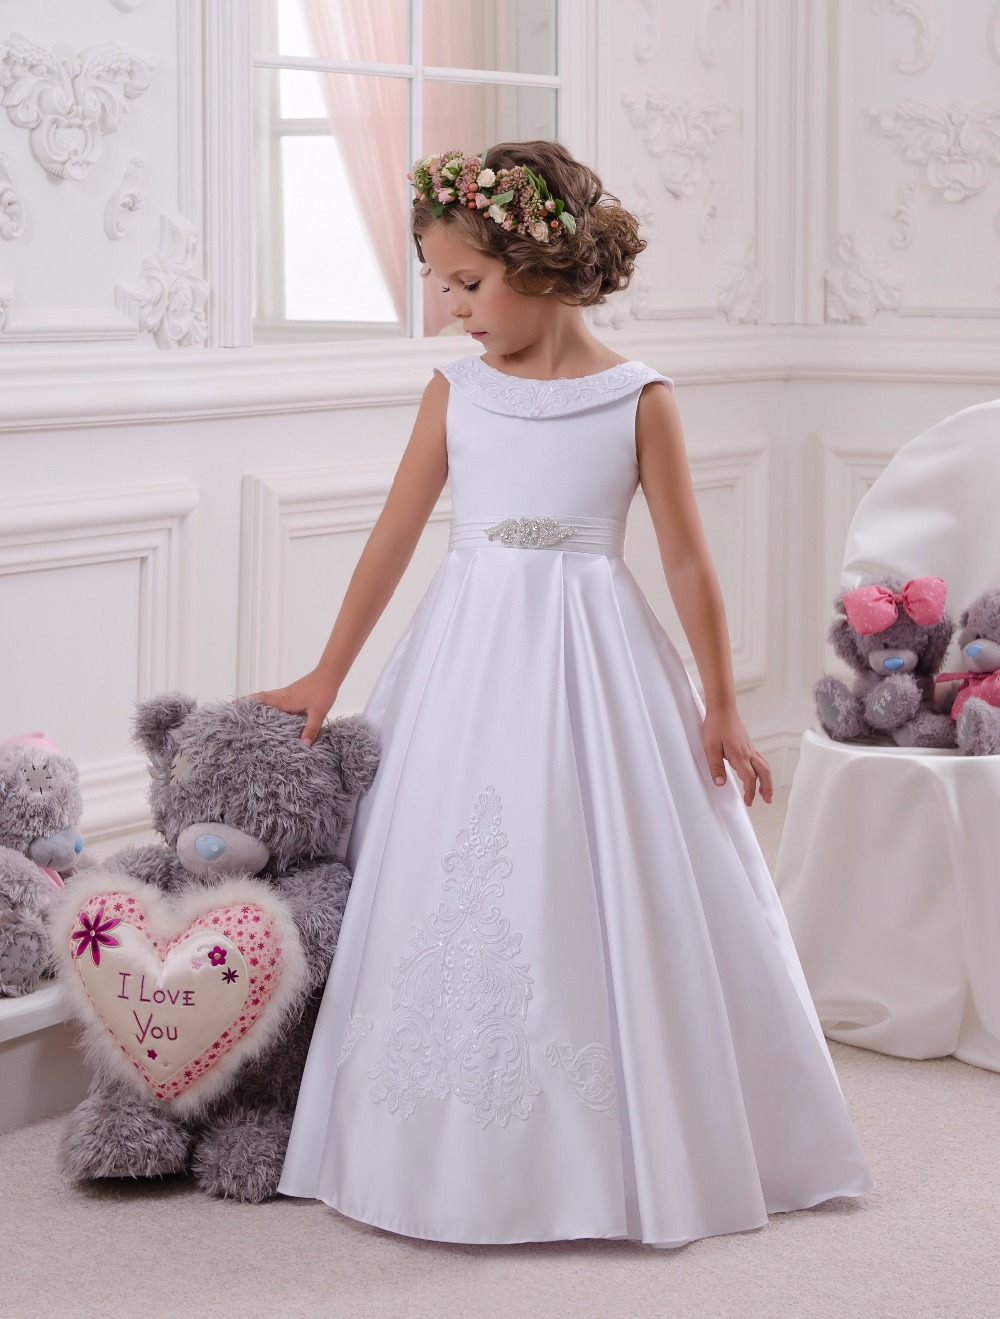 Sleeveless Holy Communion Infant Kids Floor Length Lace Satin Gowns Beading  Flower Girls Strapless Dresses with Bow Belt  0-12